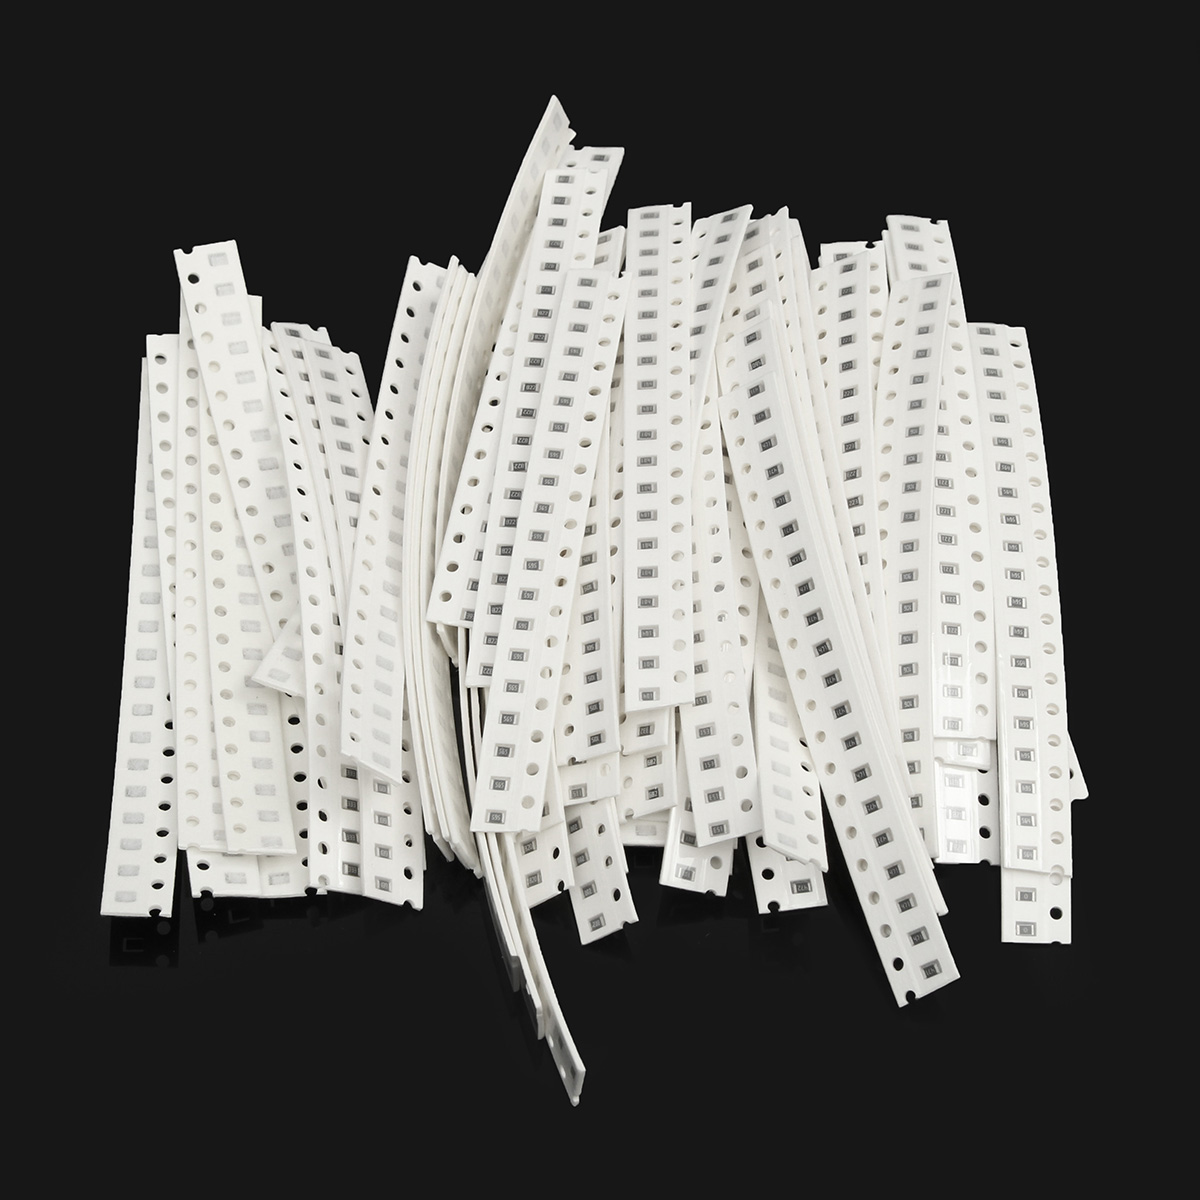 0805 SMD <font><b>Resistor</b></font> Assortment Kit Chip 5% 0ohm-<font><b>10Mohm</b></font> 64 Values 1280pcs Sample Kit image